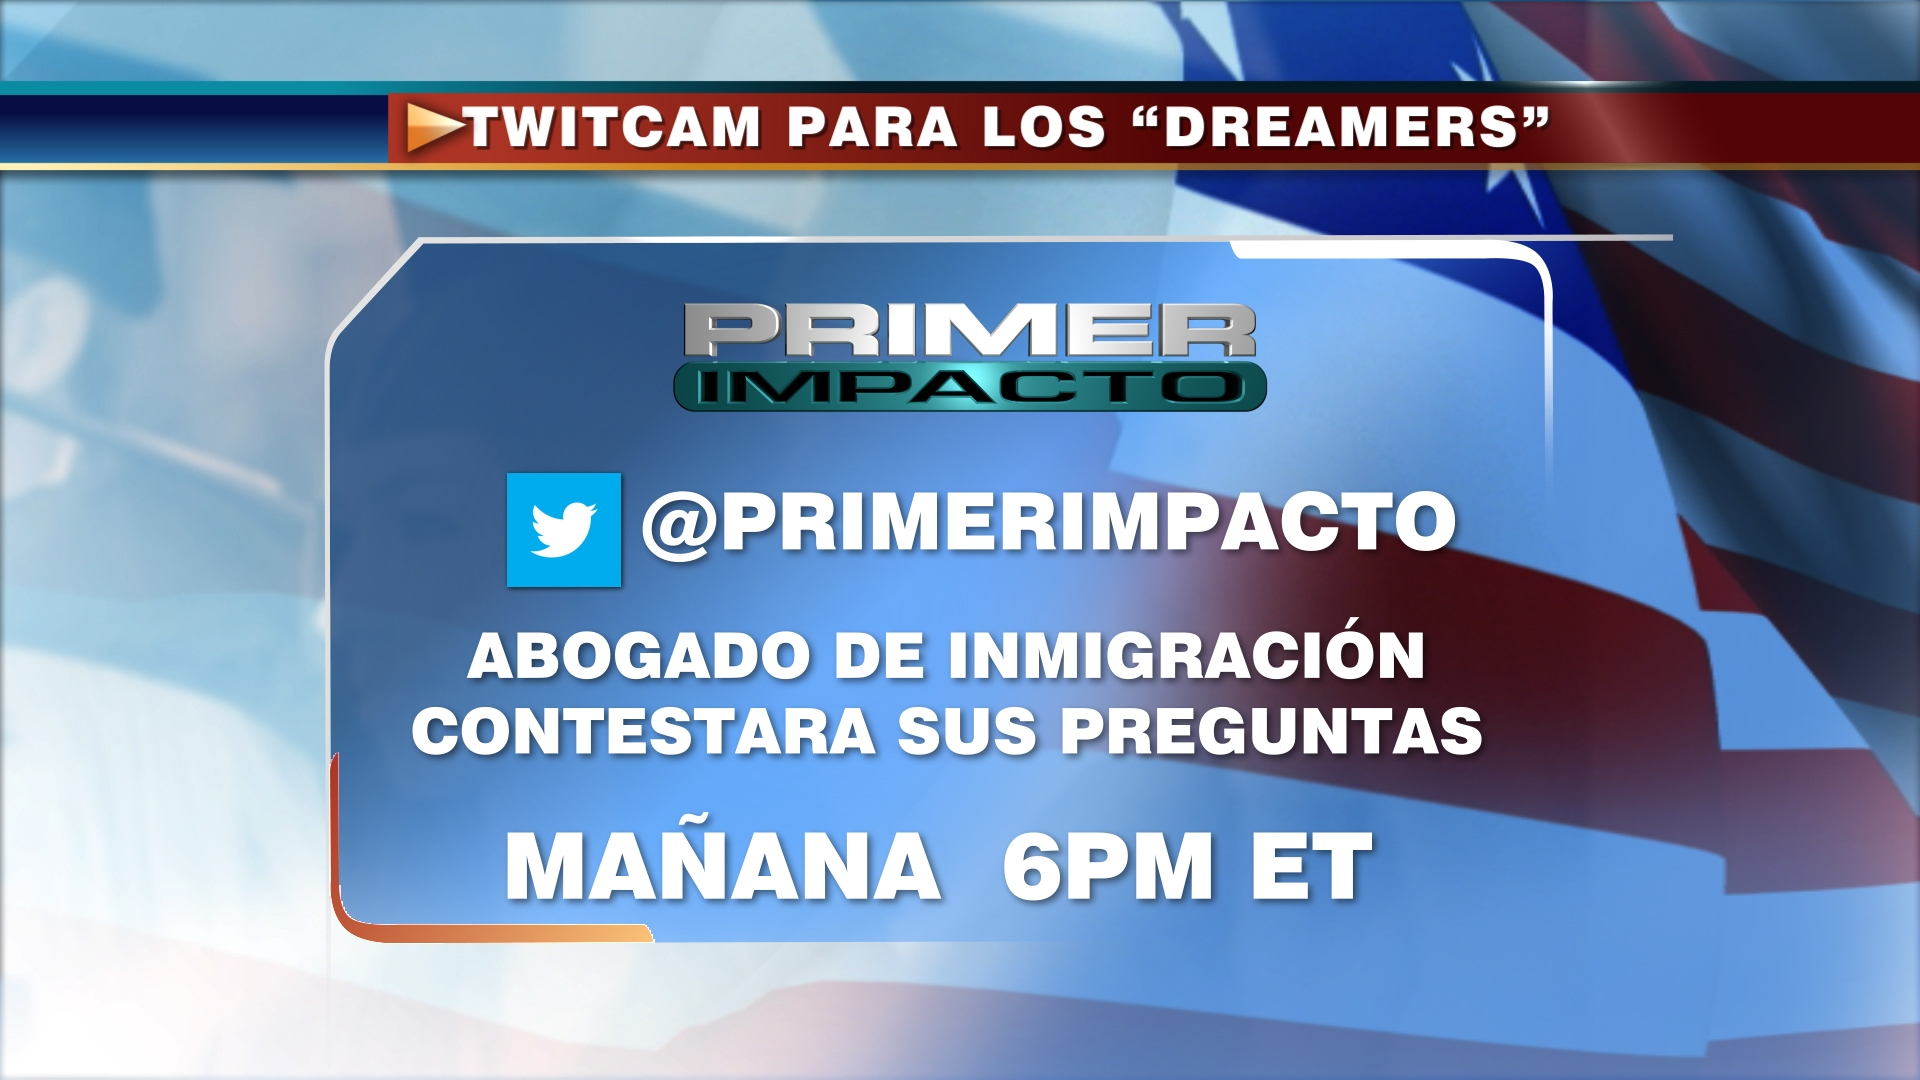 Twitcam PI inmigracion.jpg